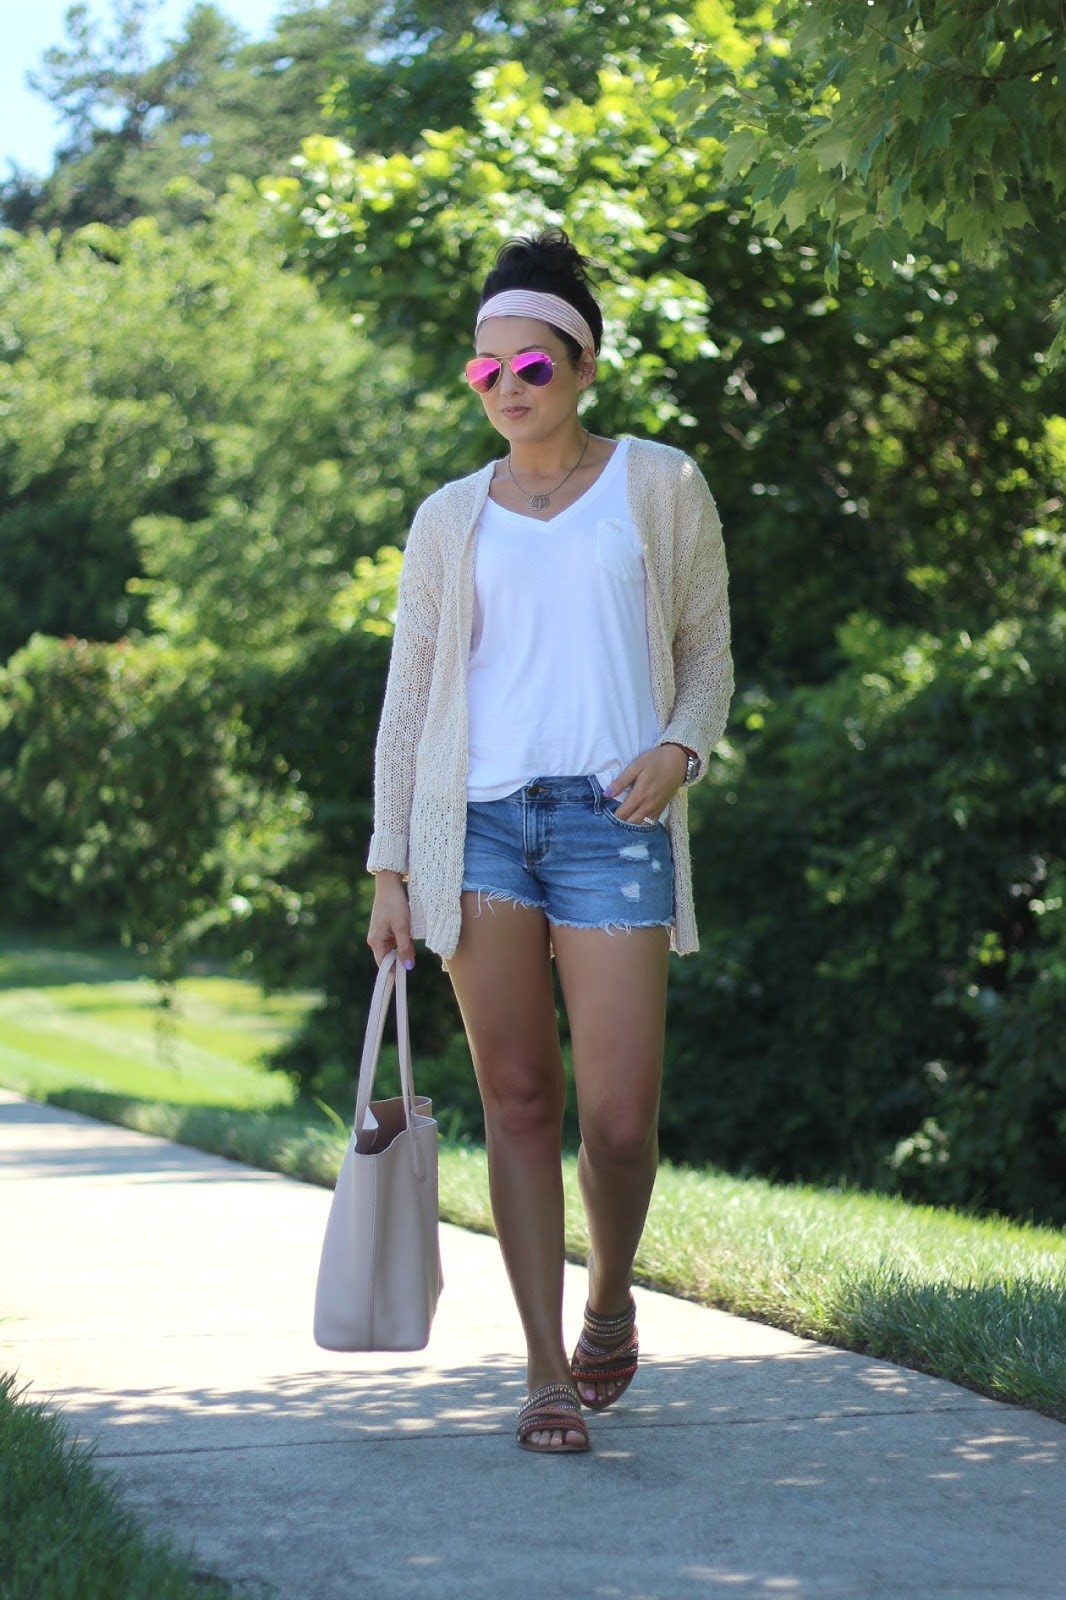 summer looks, summer style, summer fashion, summer outfits